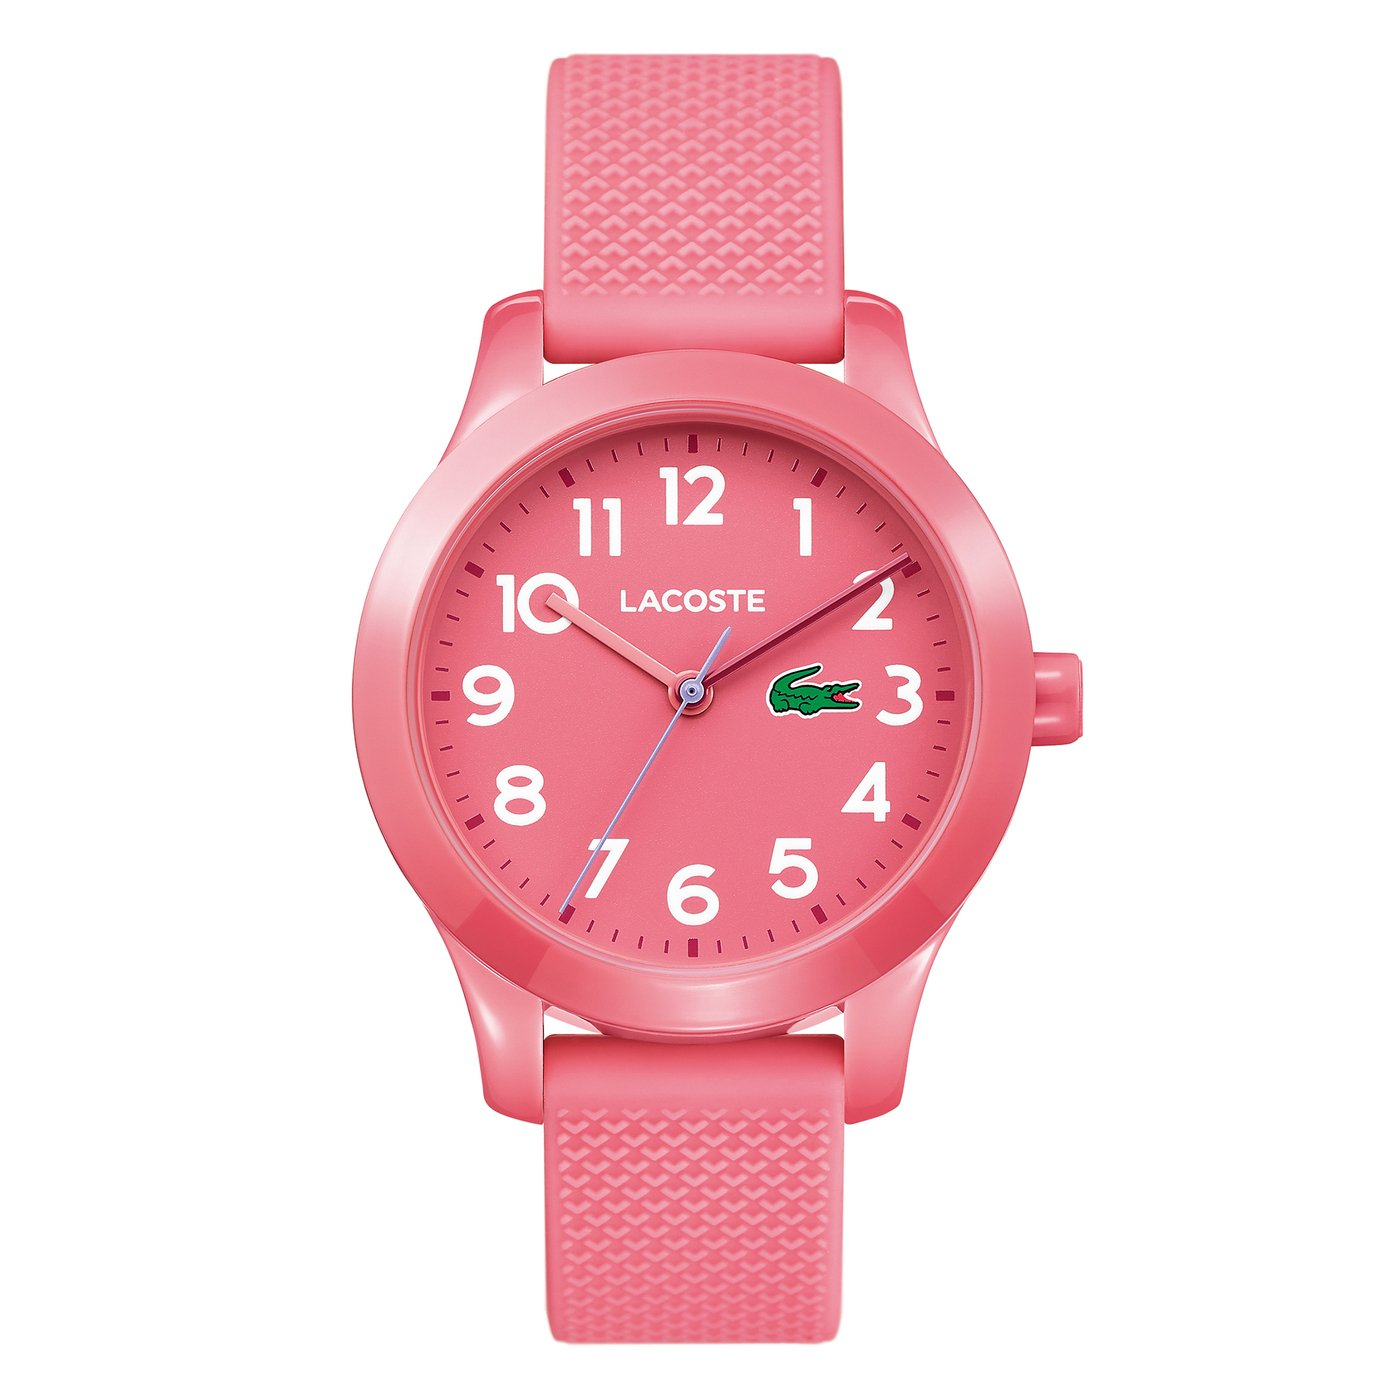 Lacoste Children's Pink Silicone Strap Watch